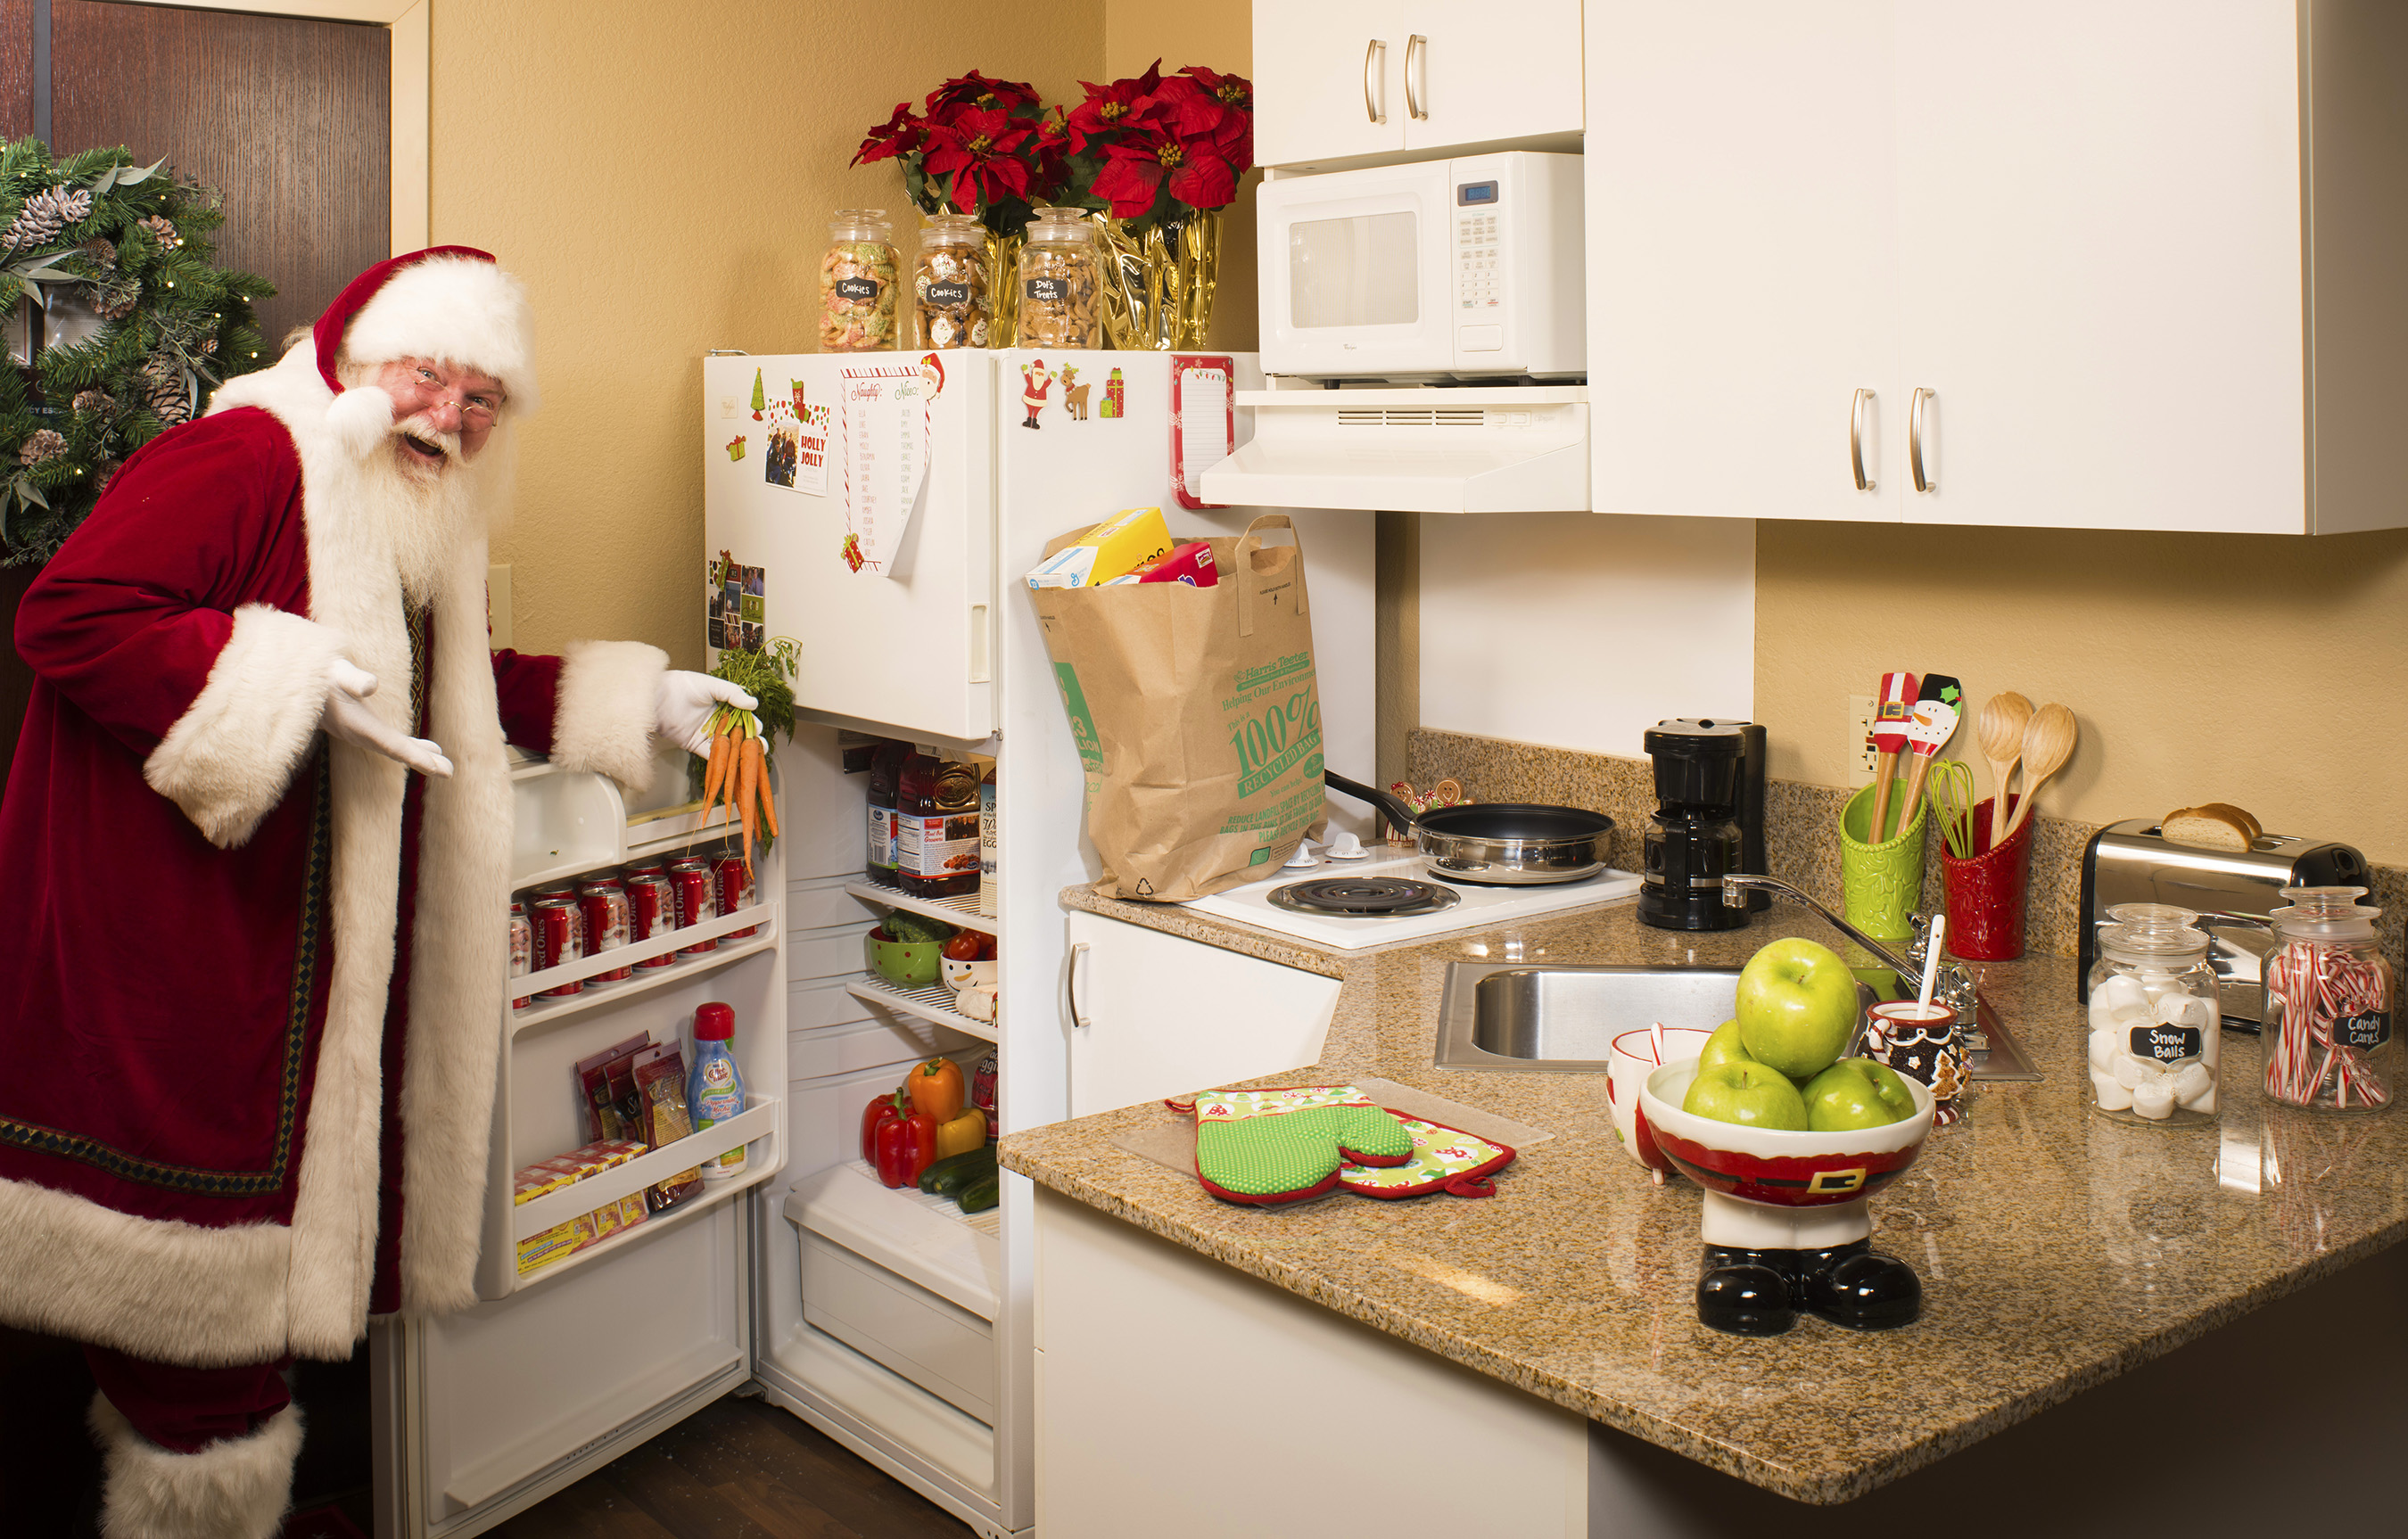 When staying at his official hotel, Extended Stay America, Santa can enjoy his favorite meals. With fully equipped kitchens in every room, guests never miss out on seasonal staples.